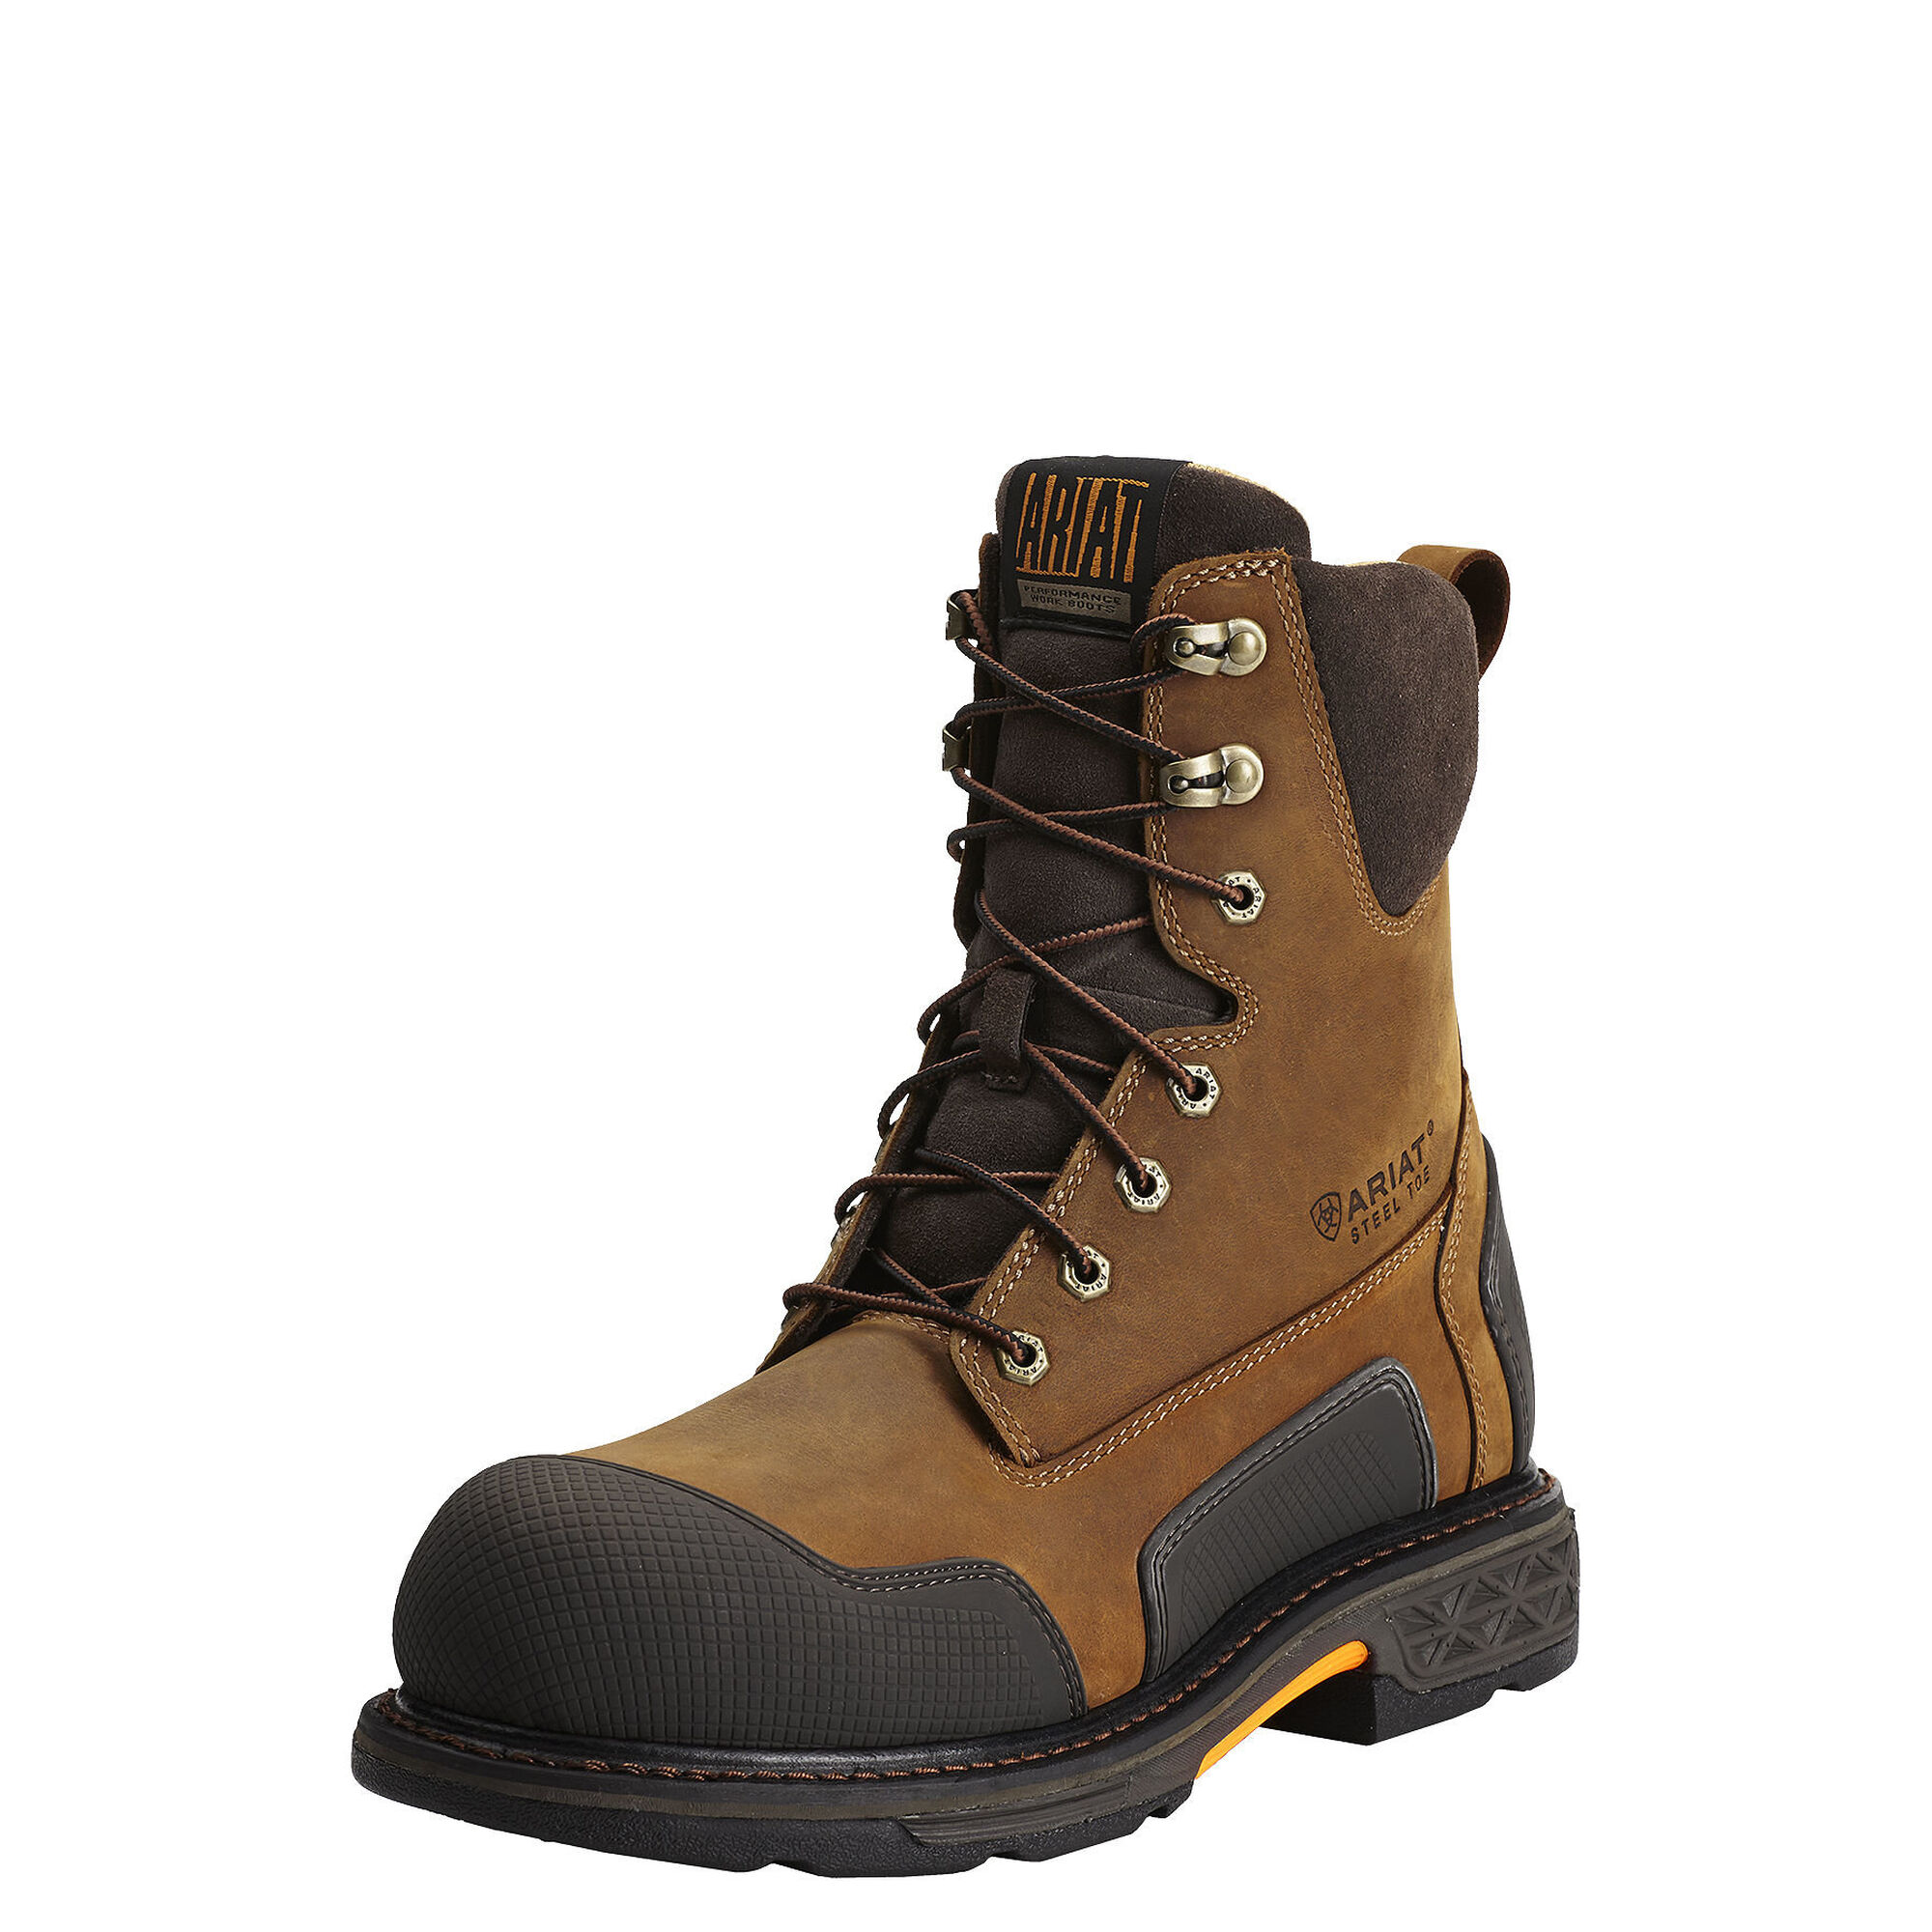 "OverDrive XTR 8"" Side Zip Steel Toe Work Boot"